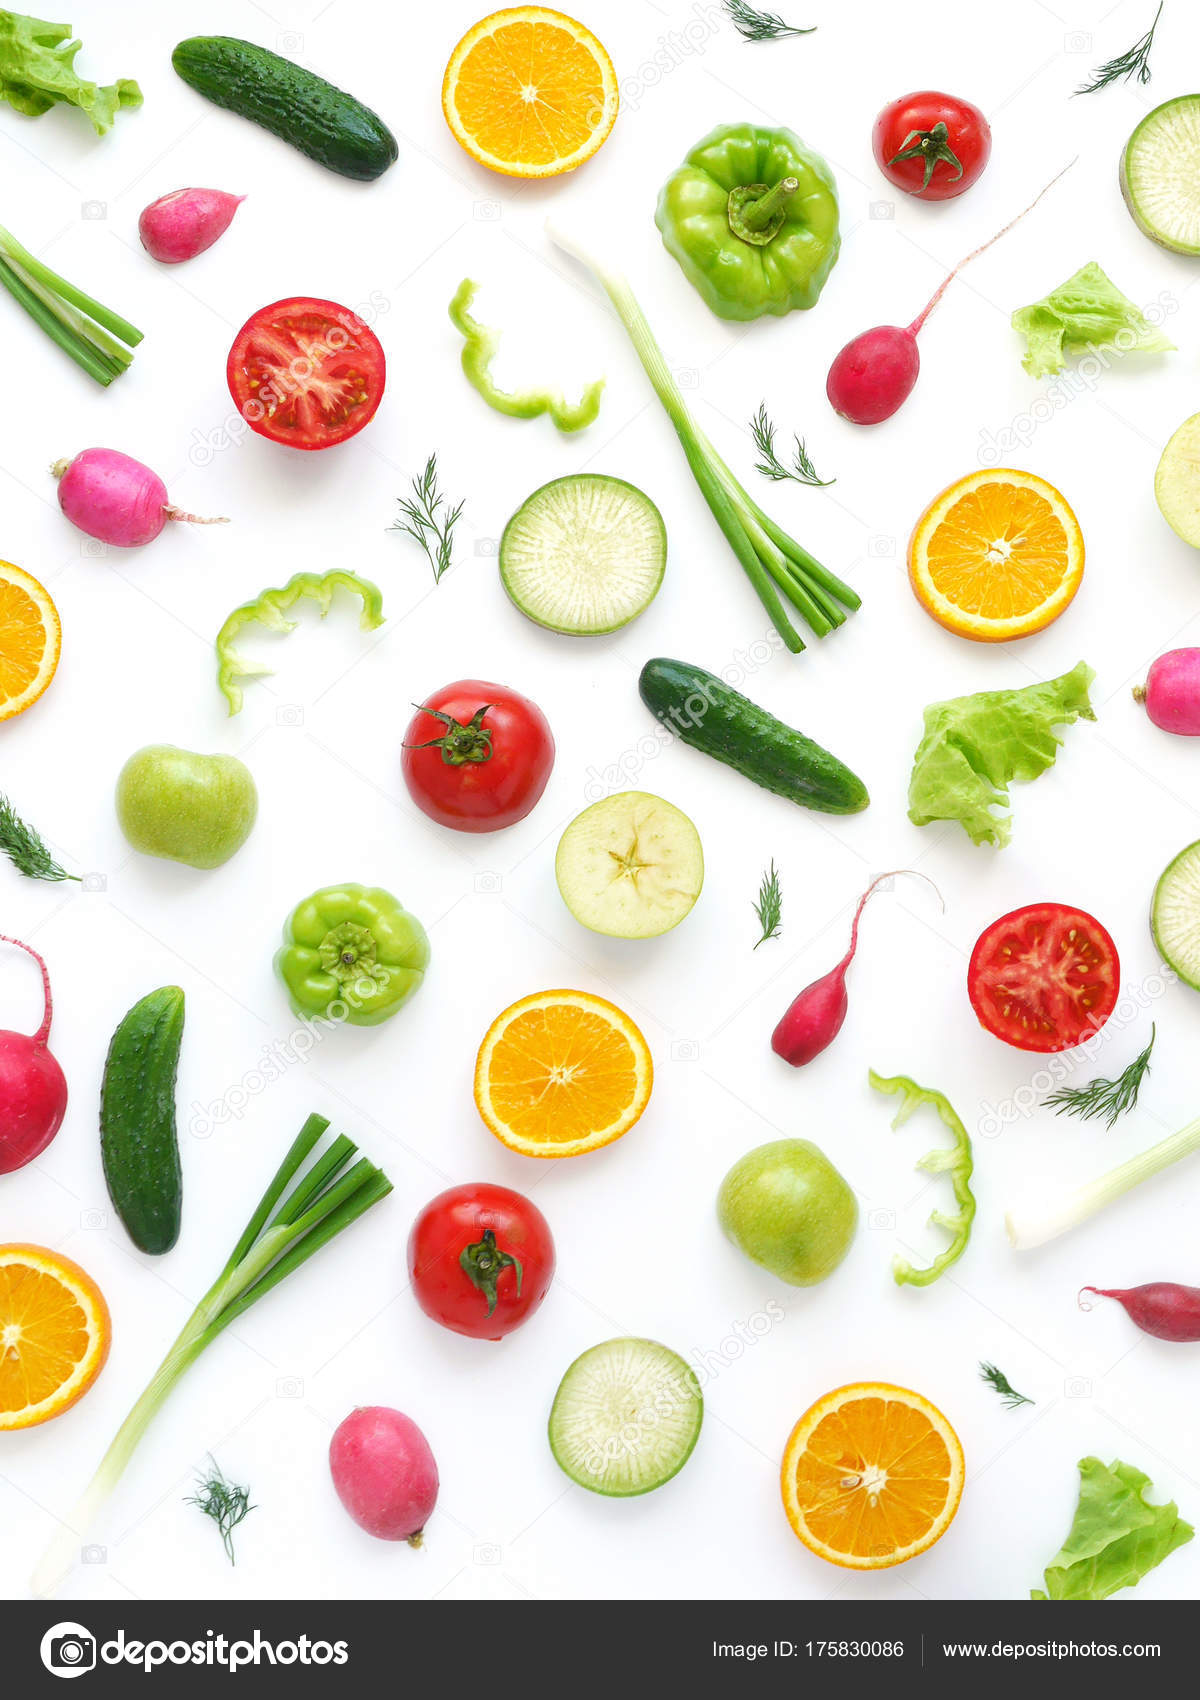 Wallpaper Abstract Composition Fruits Vegetables Food